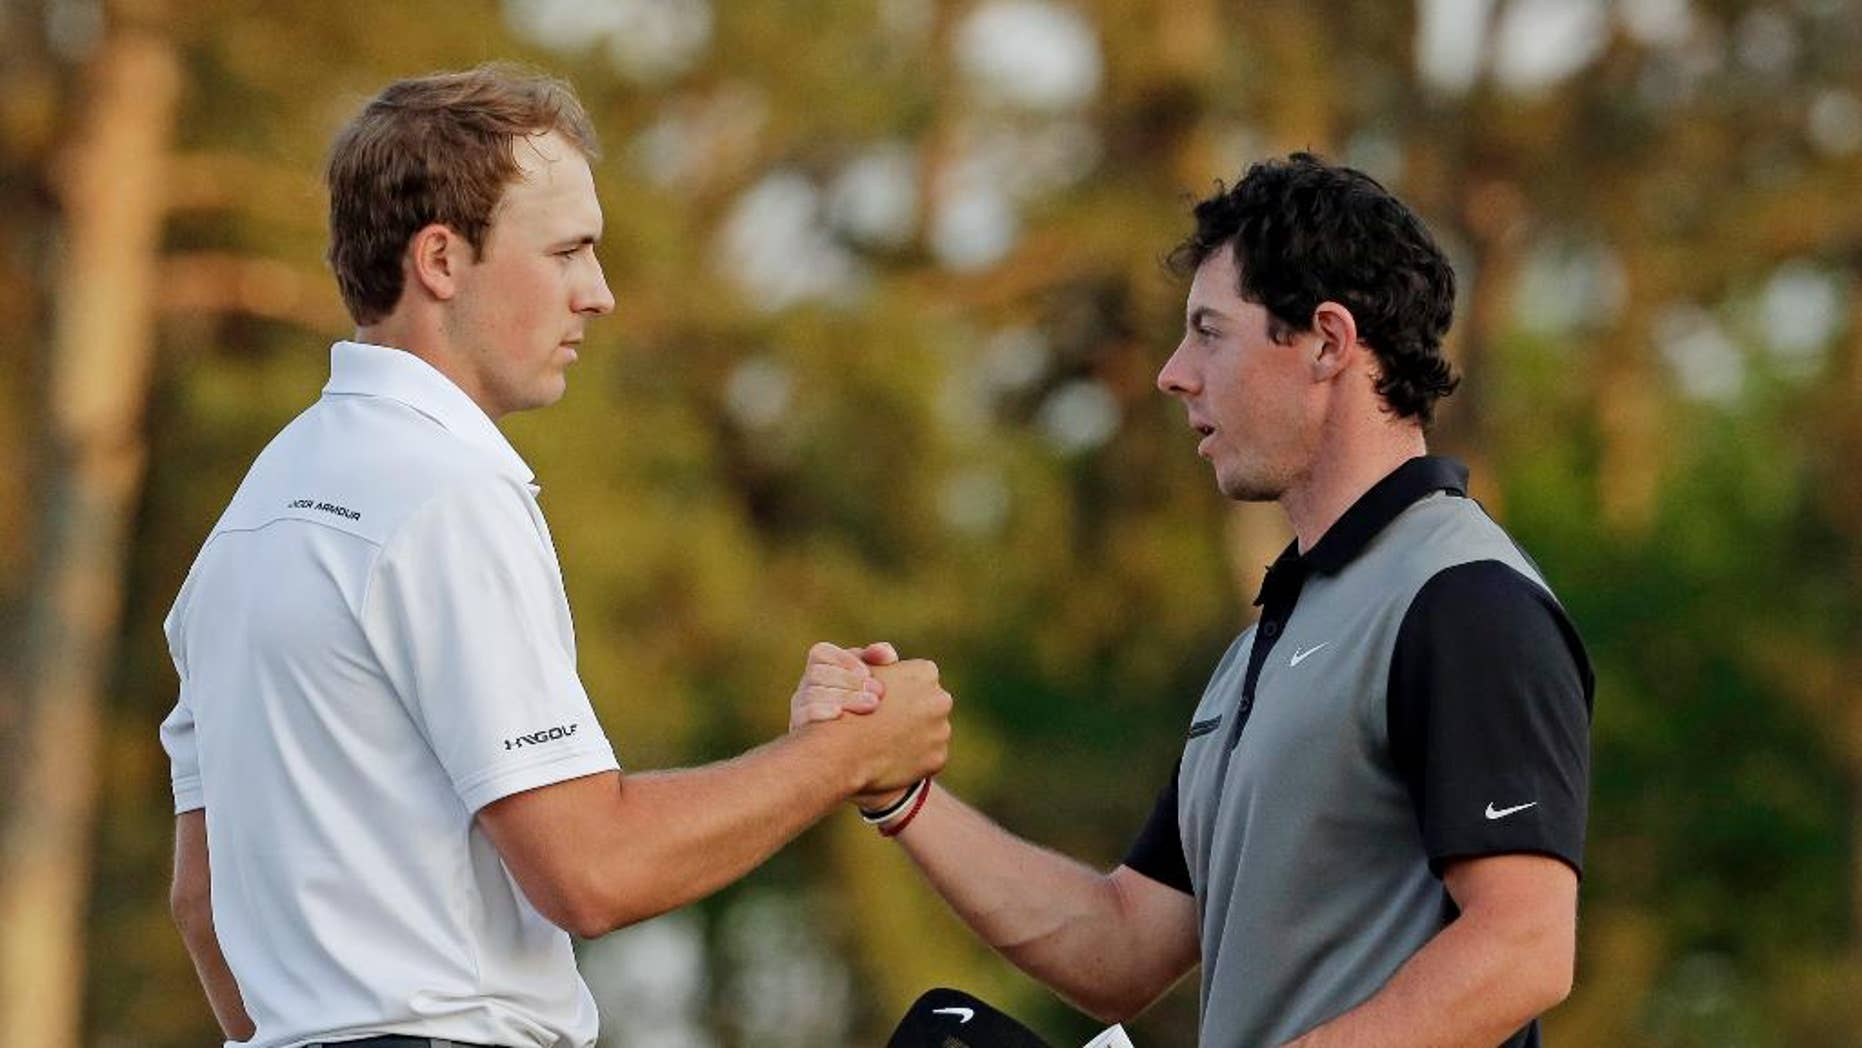 FILE - In this April 11, 2014, file photo, Jordan Spieth, left, shakes hands with Rory McIlroy, of Northern Ireland, on the 18th green following the second round of the Masters golf tournament in Augusta, Ga. The match that didn't happen in San Francisco will be available in stroke play at The Players Championship this week. Match Play winner Rory McIlroy, ranked No. 1, and Masters champion Jordan Spieth, ranked No. 2, are in the same group for the opening two rounds.(AP Photo/Charlie Riedel, File)